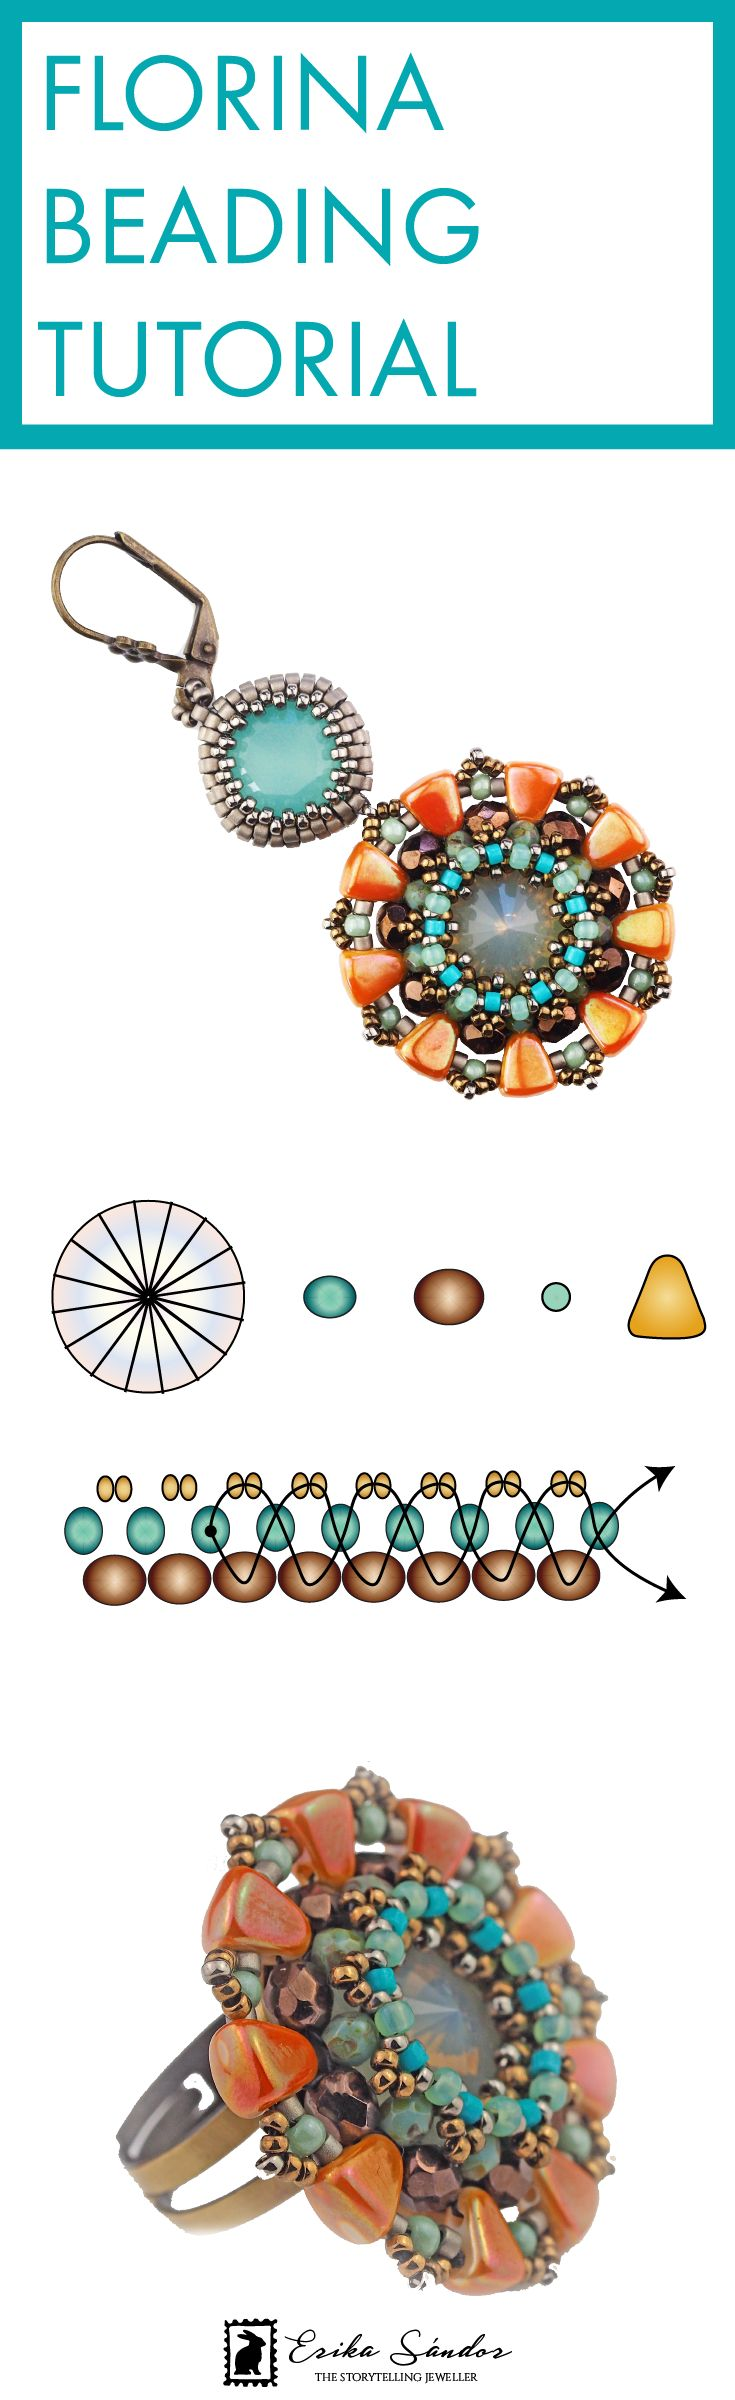 Beading pattern / tutorial / instructions / schema for Florina beaded ring, brooch, pendant or earrings. With Swarovski round rivoli cabochon, Czech glass fire polished beads, Nib-Bit beads, Miyuki seed beads, Miyuki Delica, round druk beads. In orange and green. Design by Erika Sandor The Storytelling Jeweller jewelry maker from Amsterdam. Beadsmith Inspiration Squad.